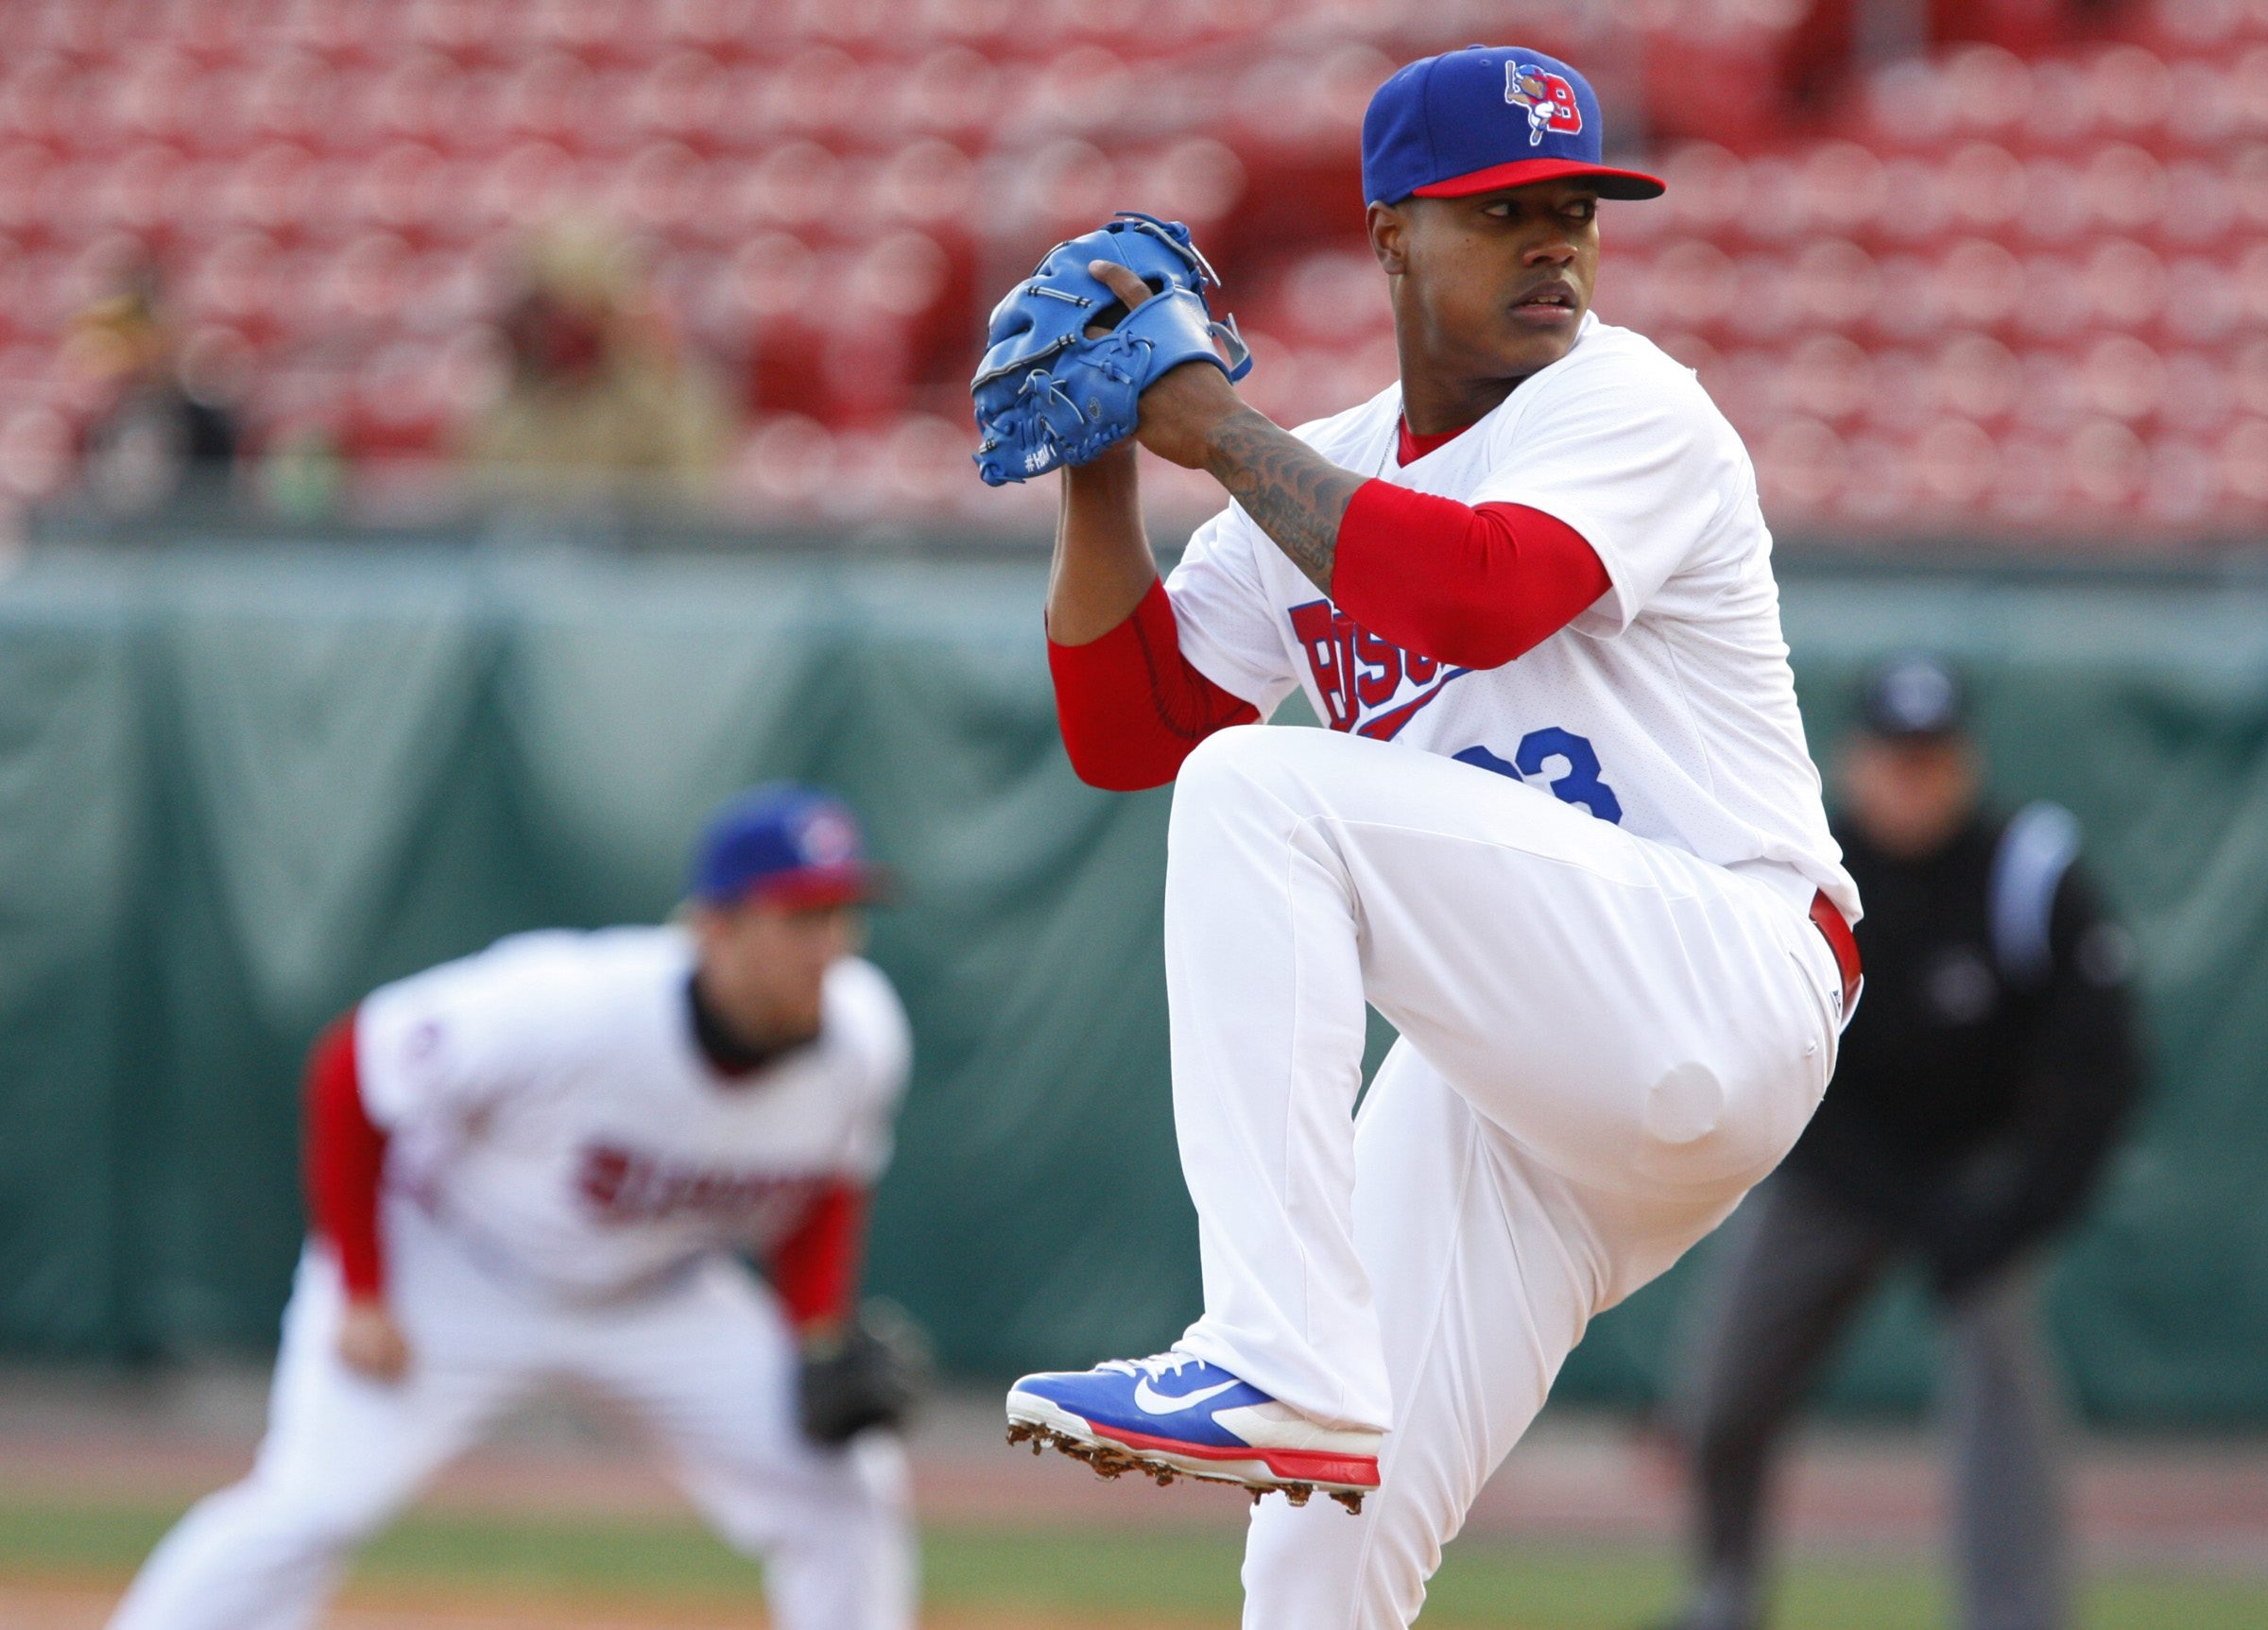 In just five starts with the Bisons, left above, Marcus Stroman had a 1.69 ERA, 36 strikeouts and seven walks. The Blue Jays called him up after he pitched a no-hitter for six innings and are working him out of the bullpen.